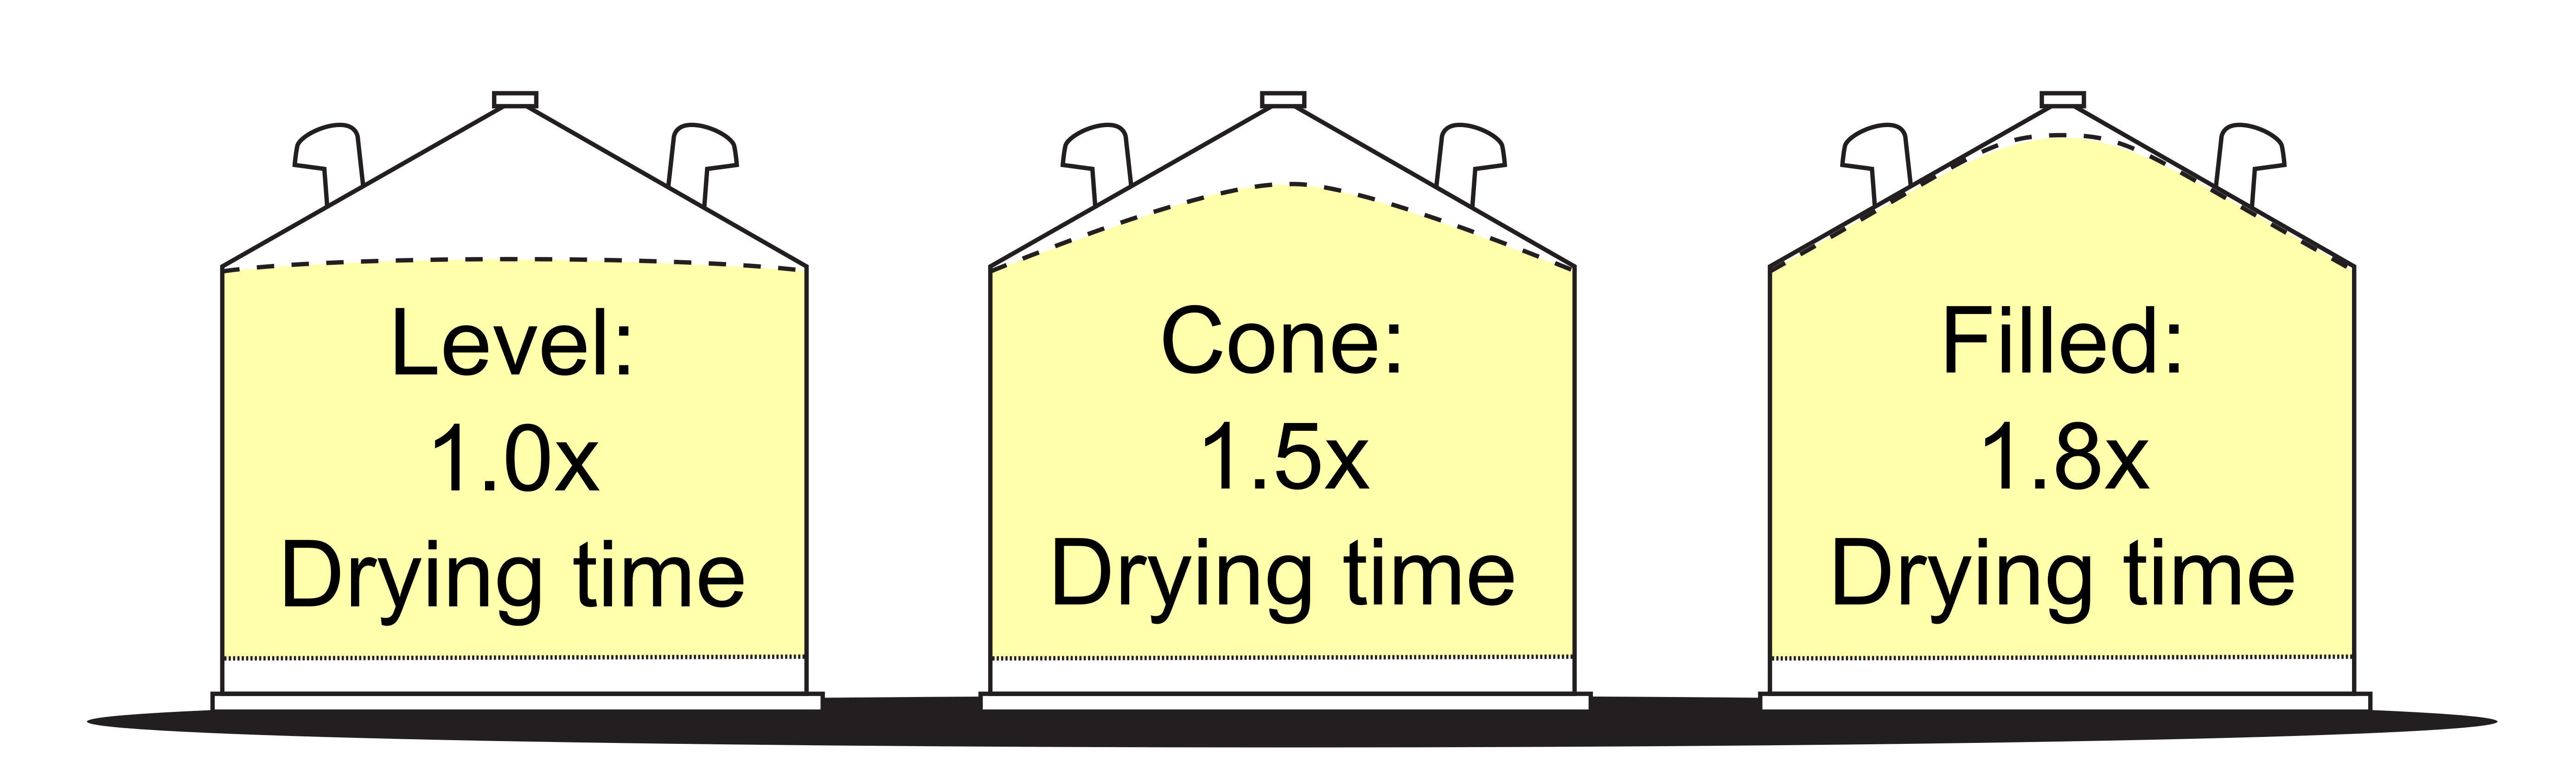 Figure 1: Uneven grain dries much more slowly than level grain (based on 36 ft. diameter bin with 12 ft. grain depth, and average airflow of 2 CFM per bushel)